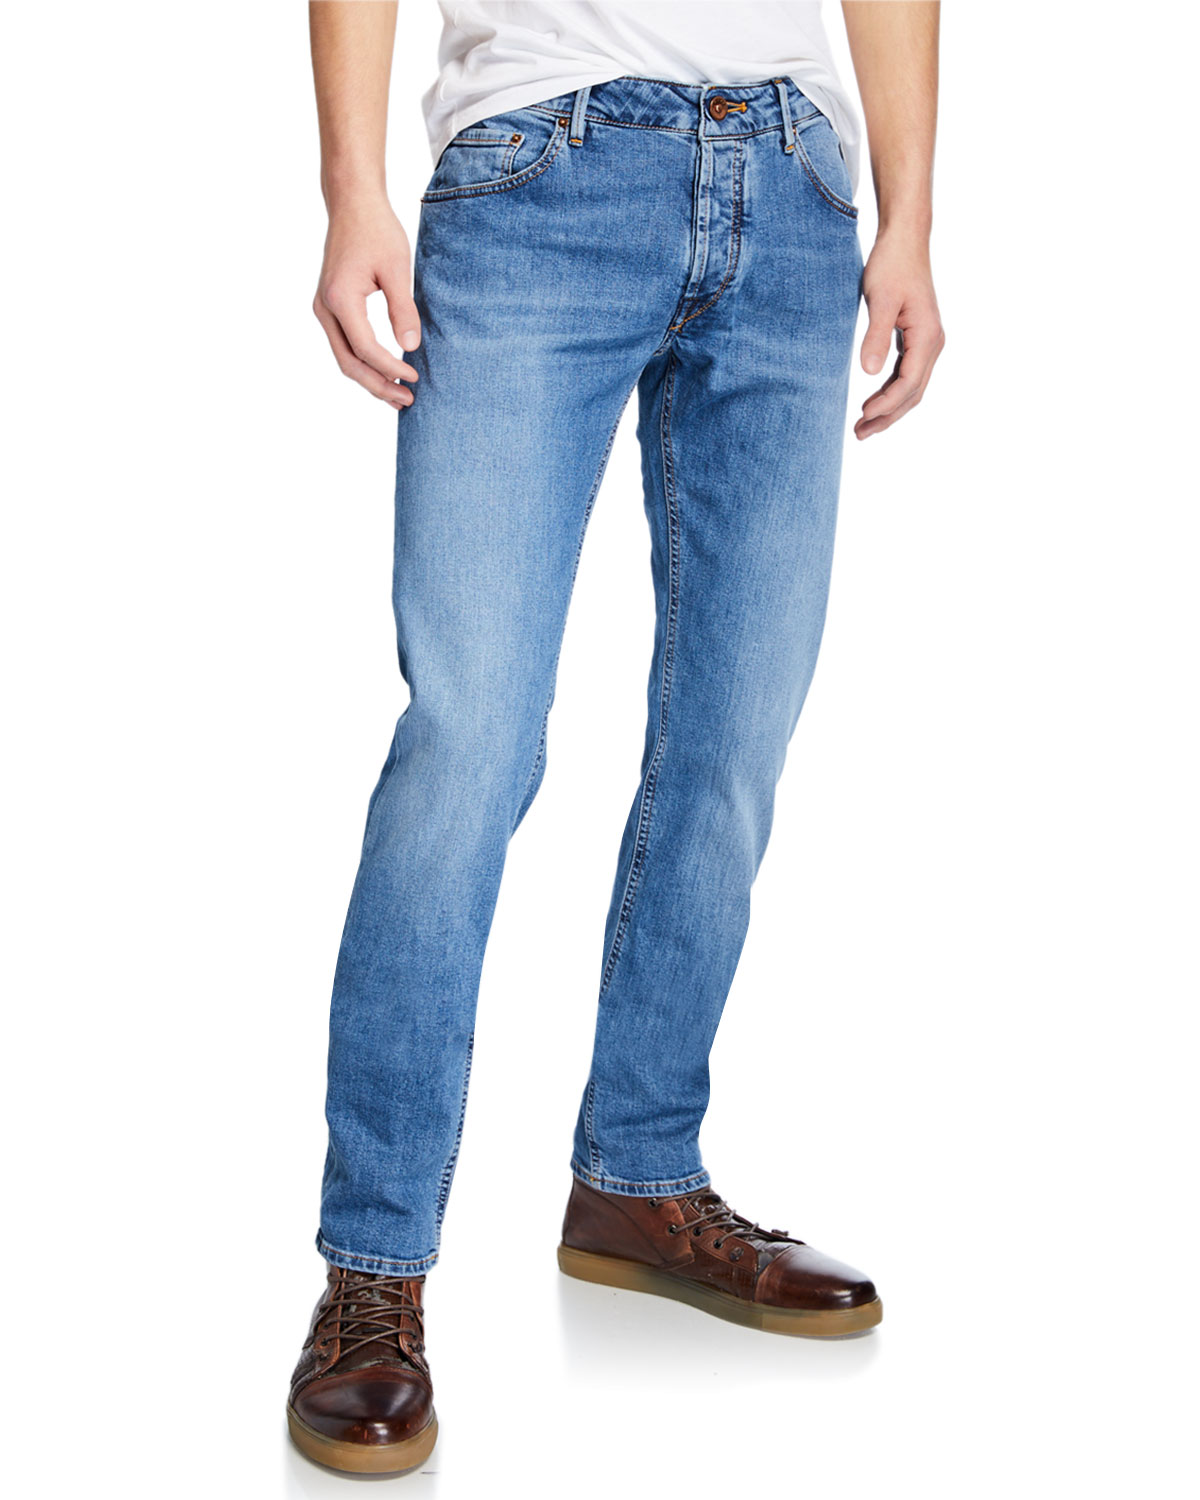 Hand Picked Men's Yagi Light-Wash Stretch Denim Jeans